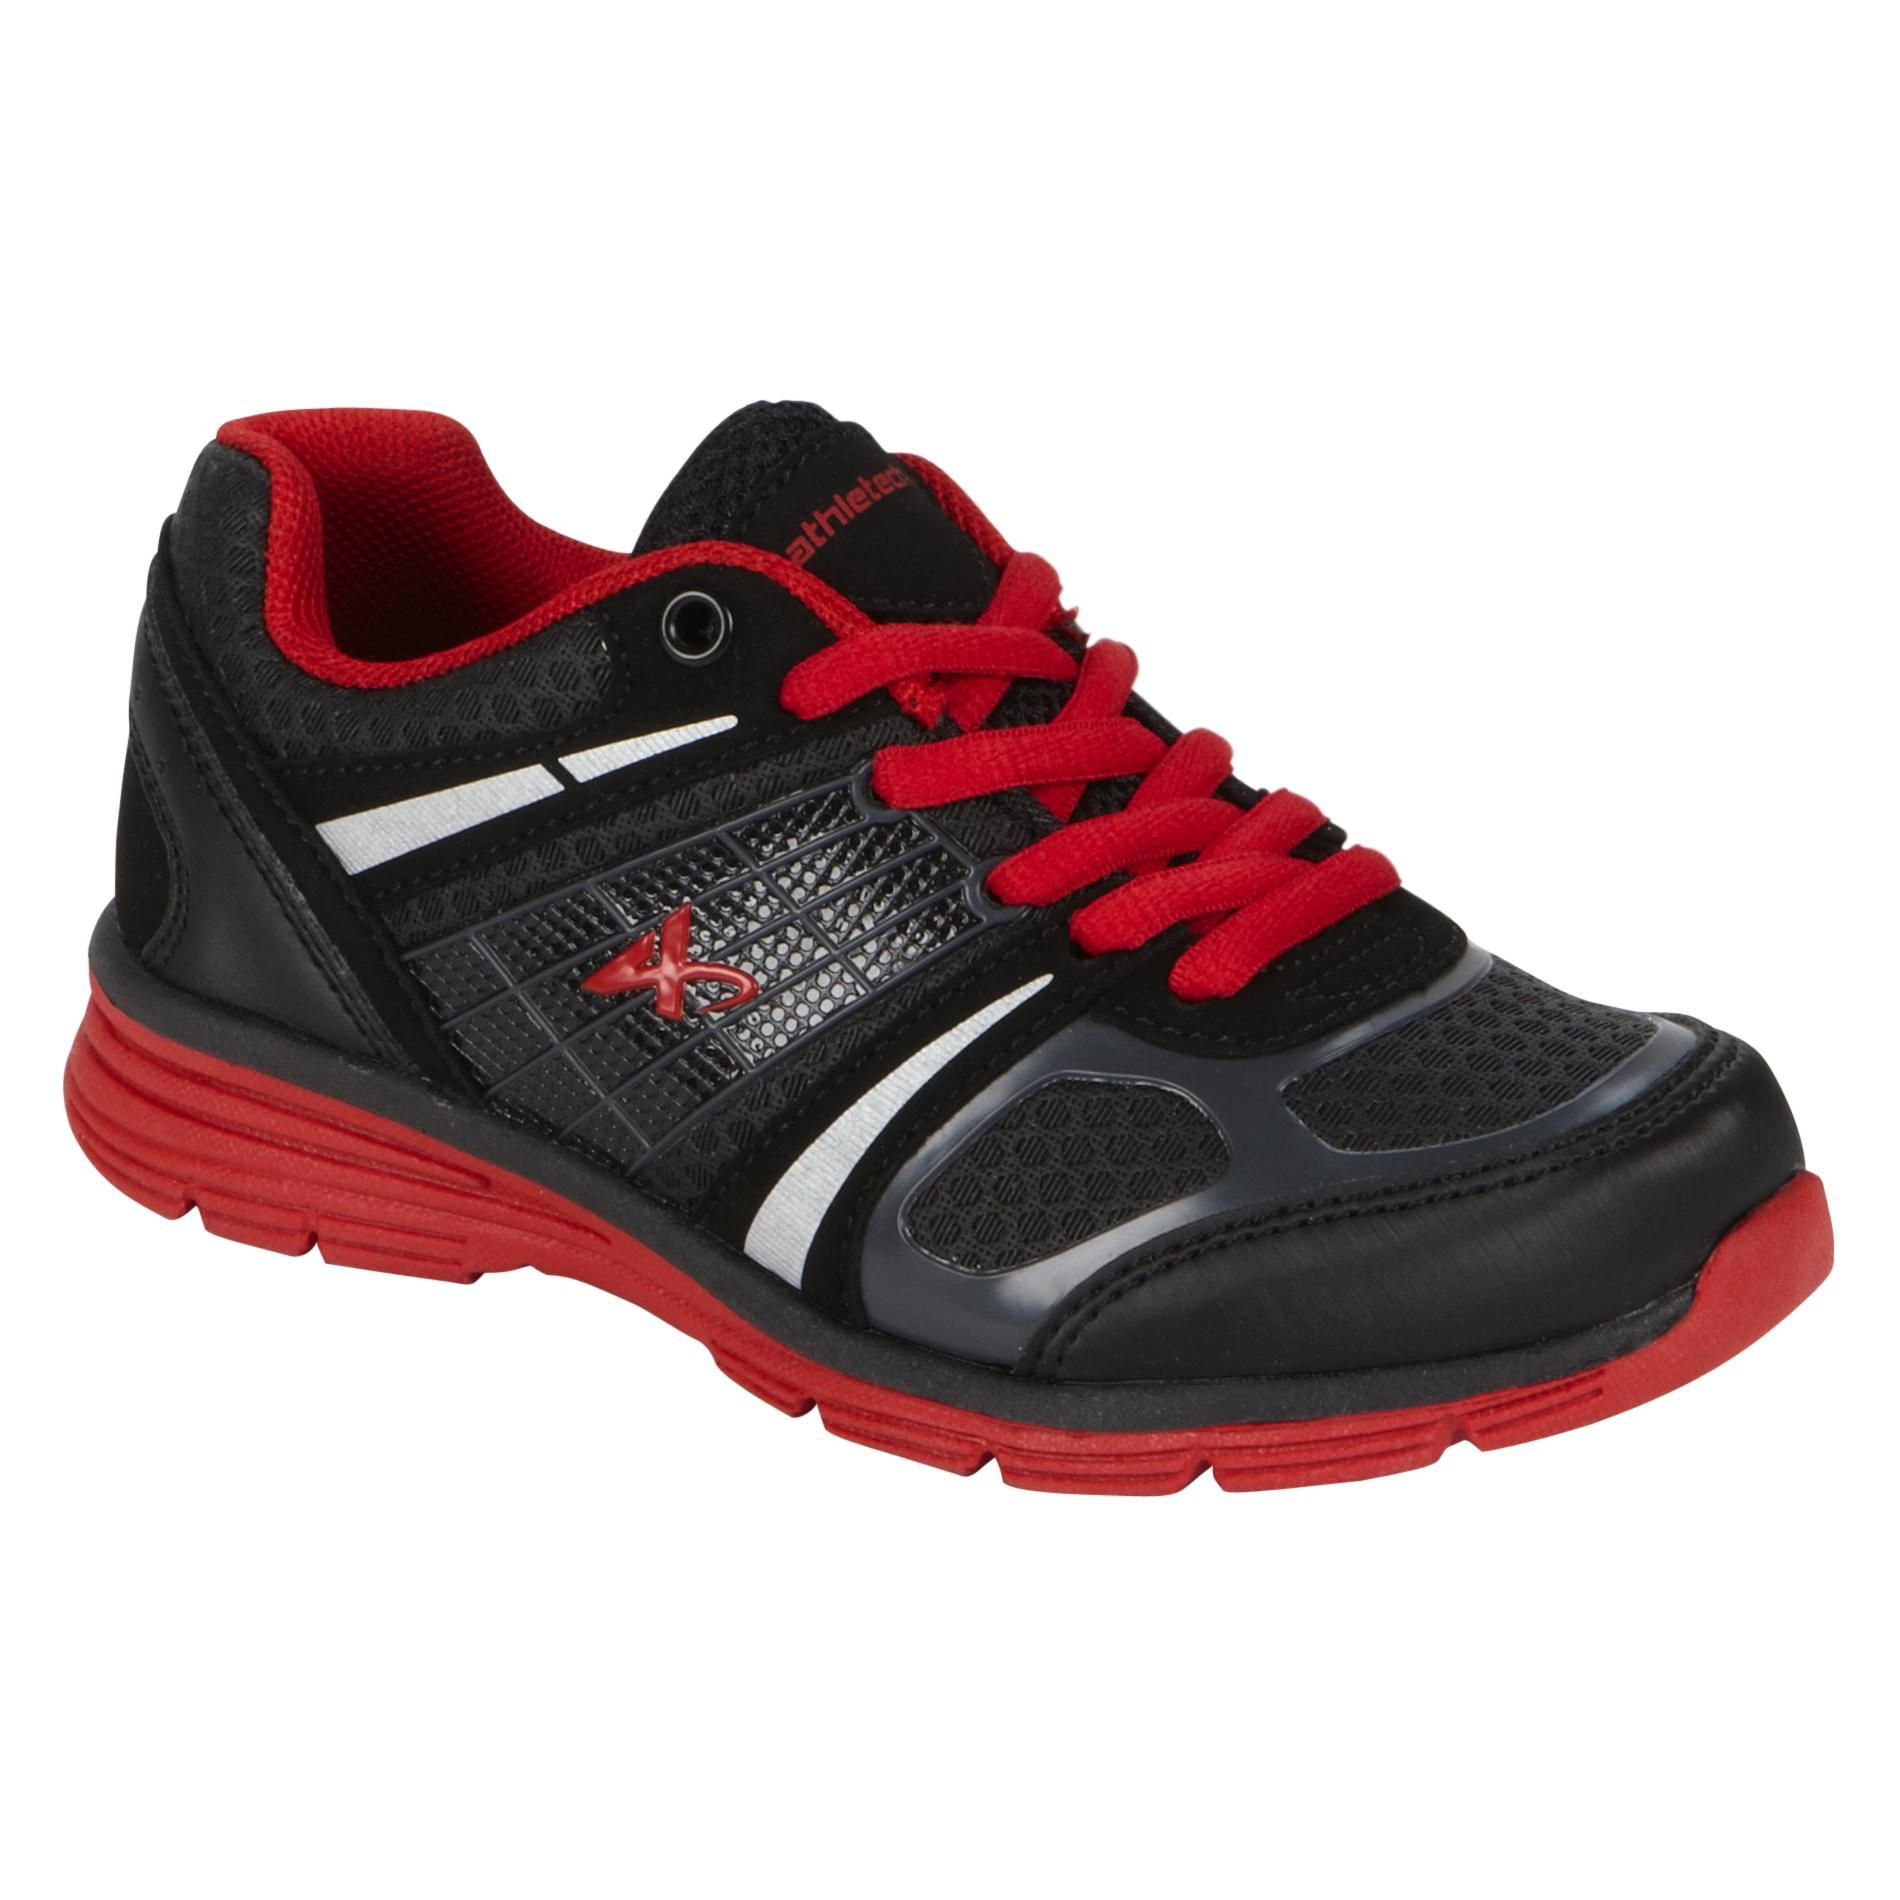 Toddler/Youth Boy's Ath L-Hawk Athletic Shoe